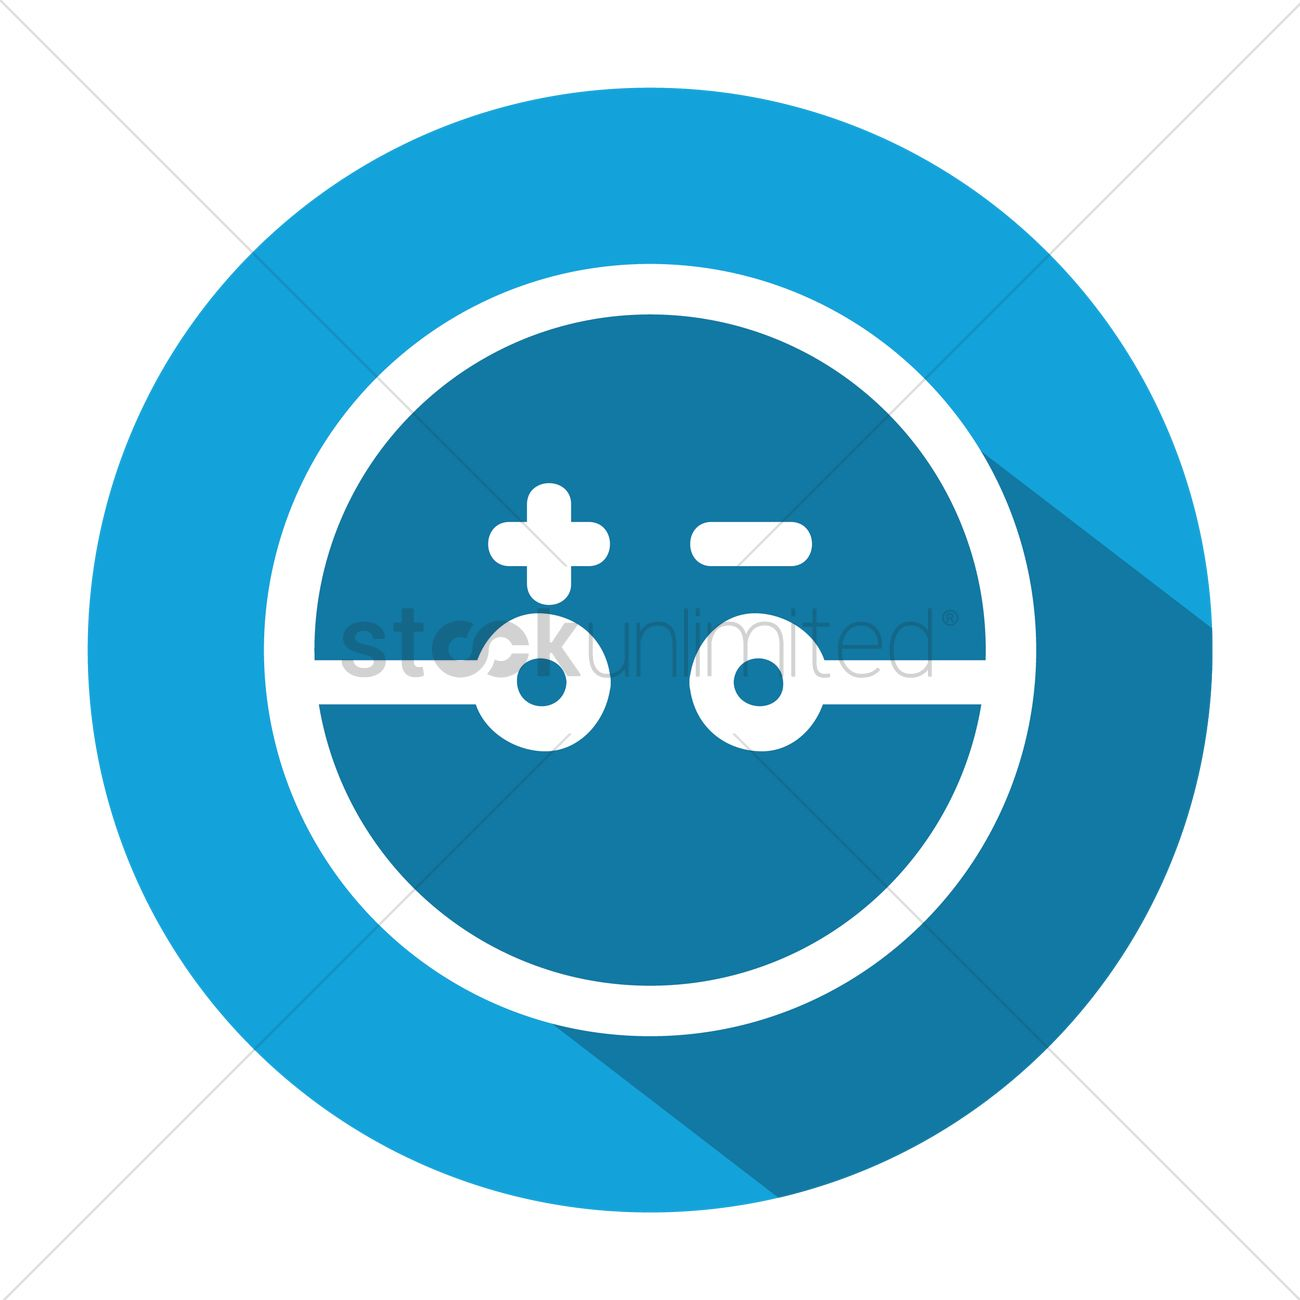 Free Electric circuit symbol for open switch Vector Image - 1248251 ...